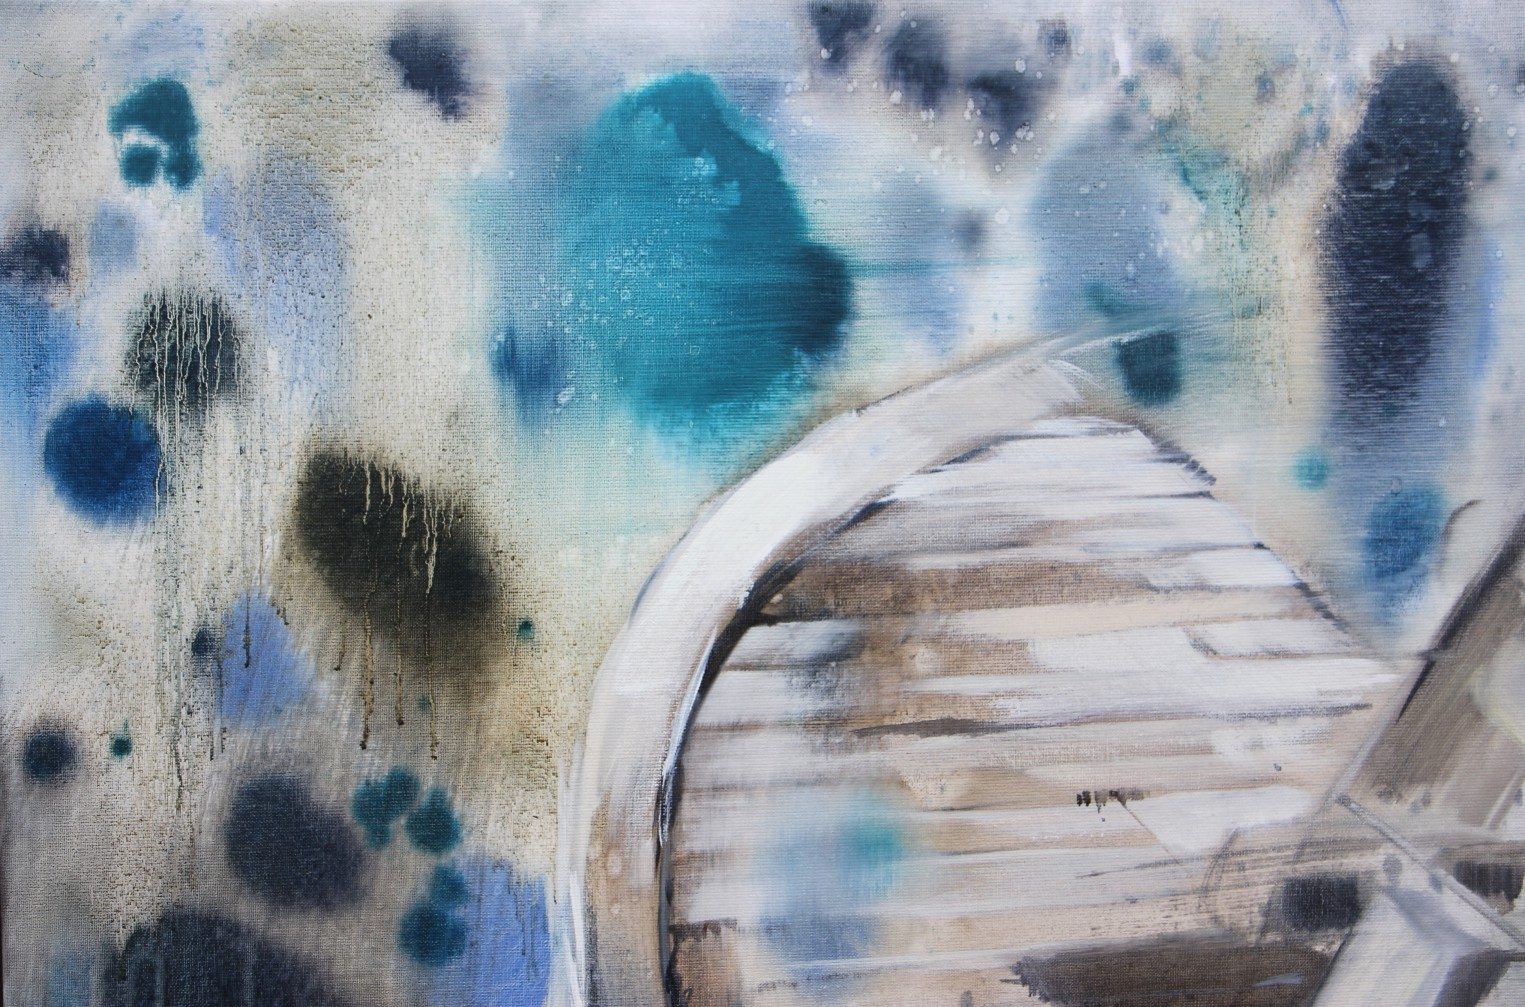 Wilma van der Meyden - oil painting from the series 'Seven Scapes', inspired by the island Berneray